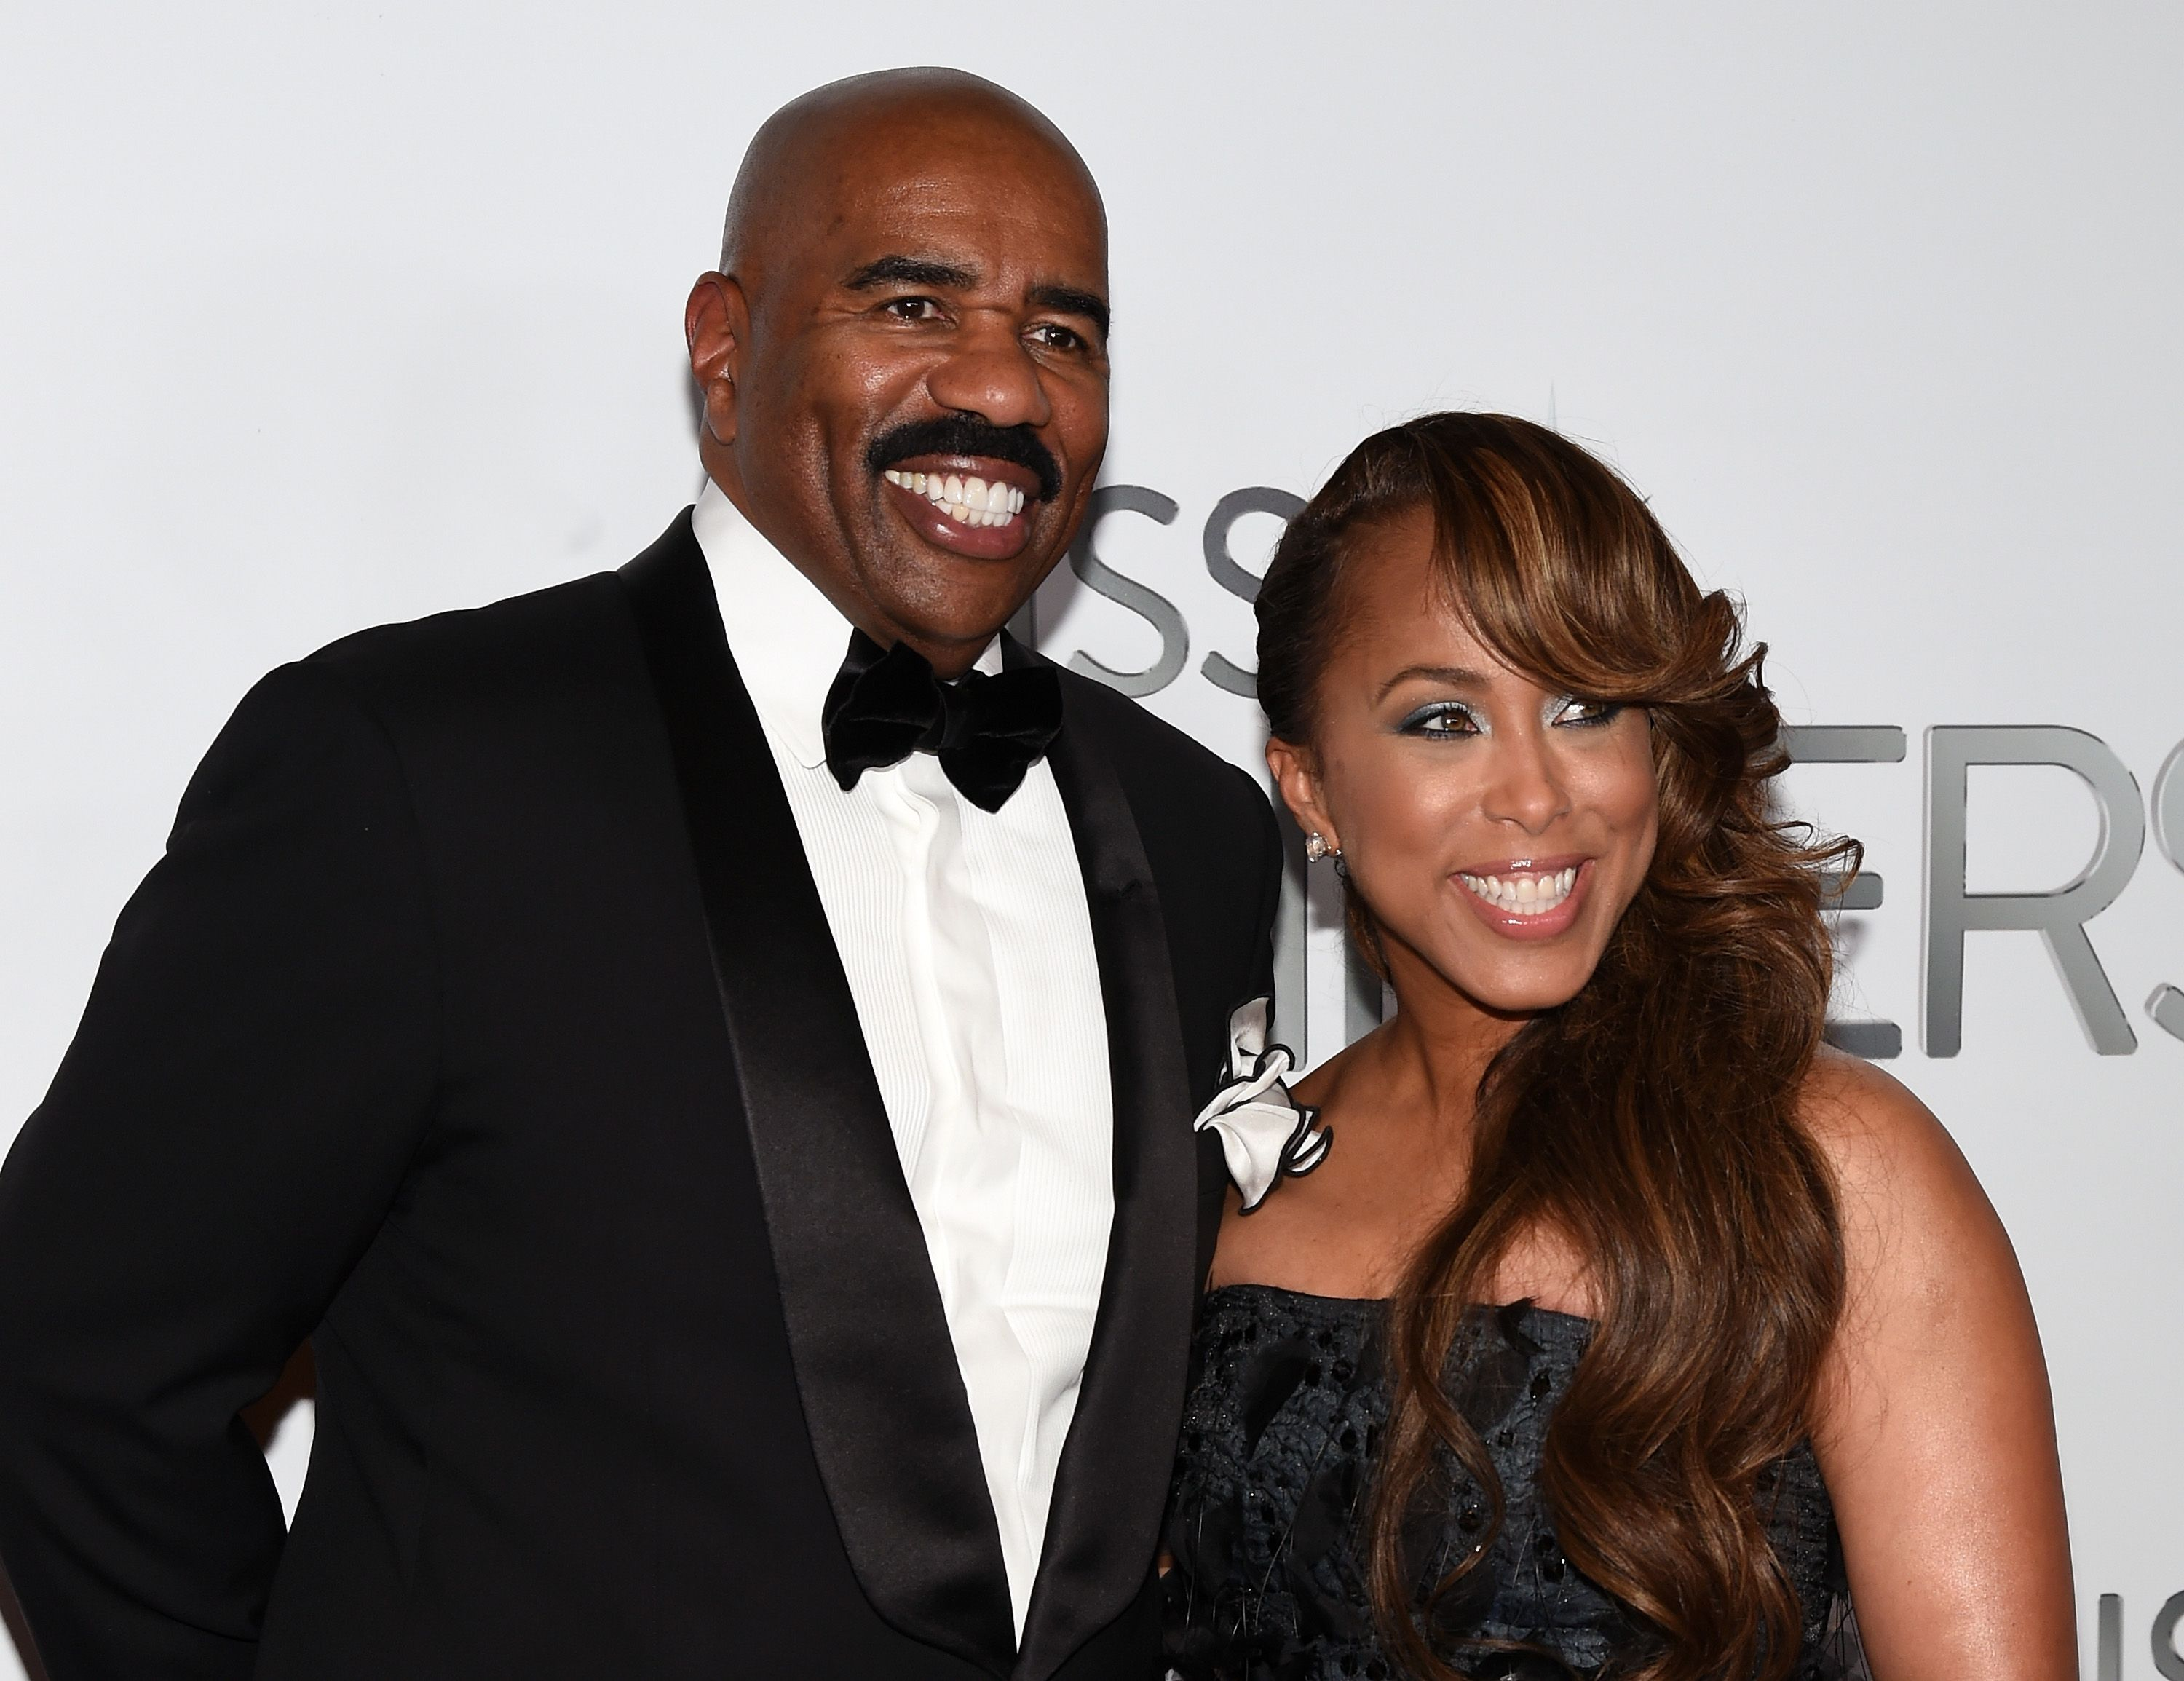 Steve Harvey and his wife Marjorie Harvey attend the 2015 Miss Universe Pageant at Planet Hollywood Resort & Casino on December 20, 2015 in Las Vegas, Nevada. | Photo: Getty Images.